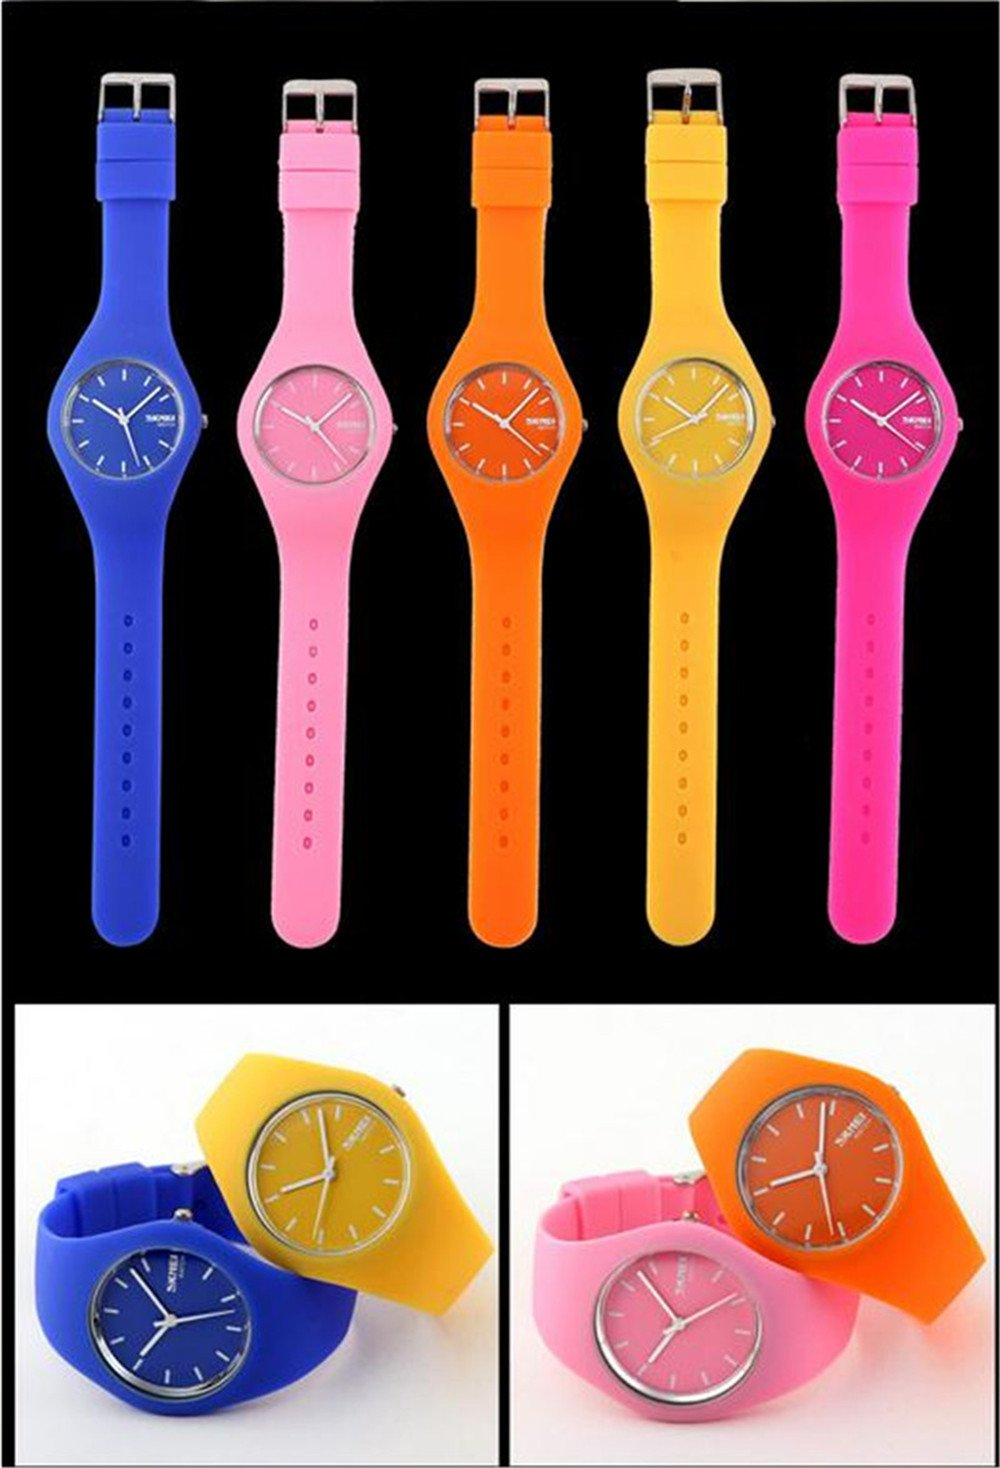 Skmei fashion Trends Korean version of the silica gel quartz ultra-thin fine gift watches(12 styles) (gray) by SKMEI (Image #9)